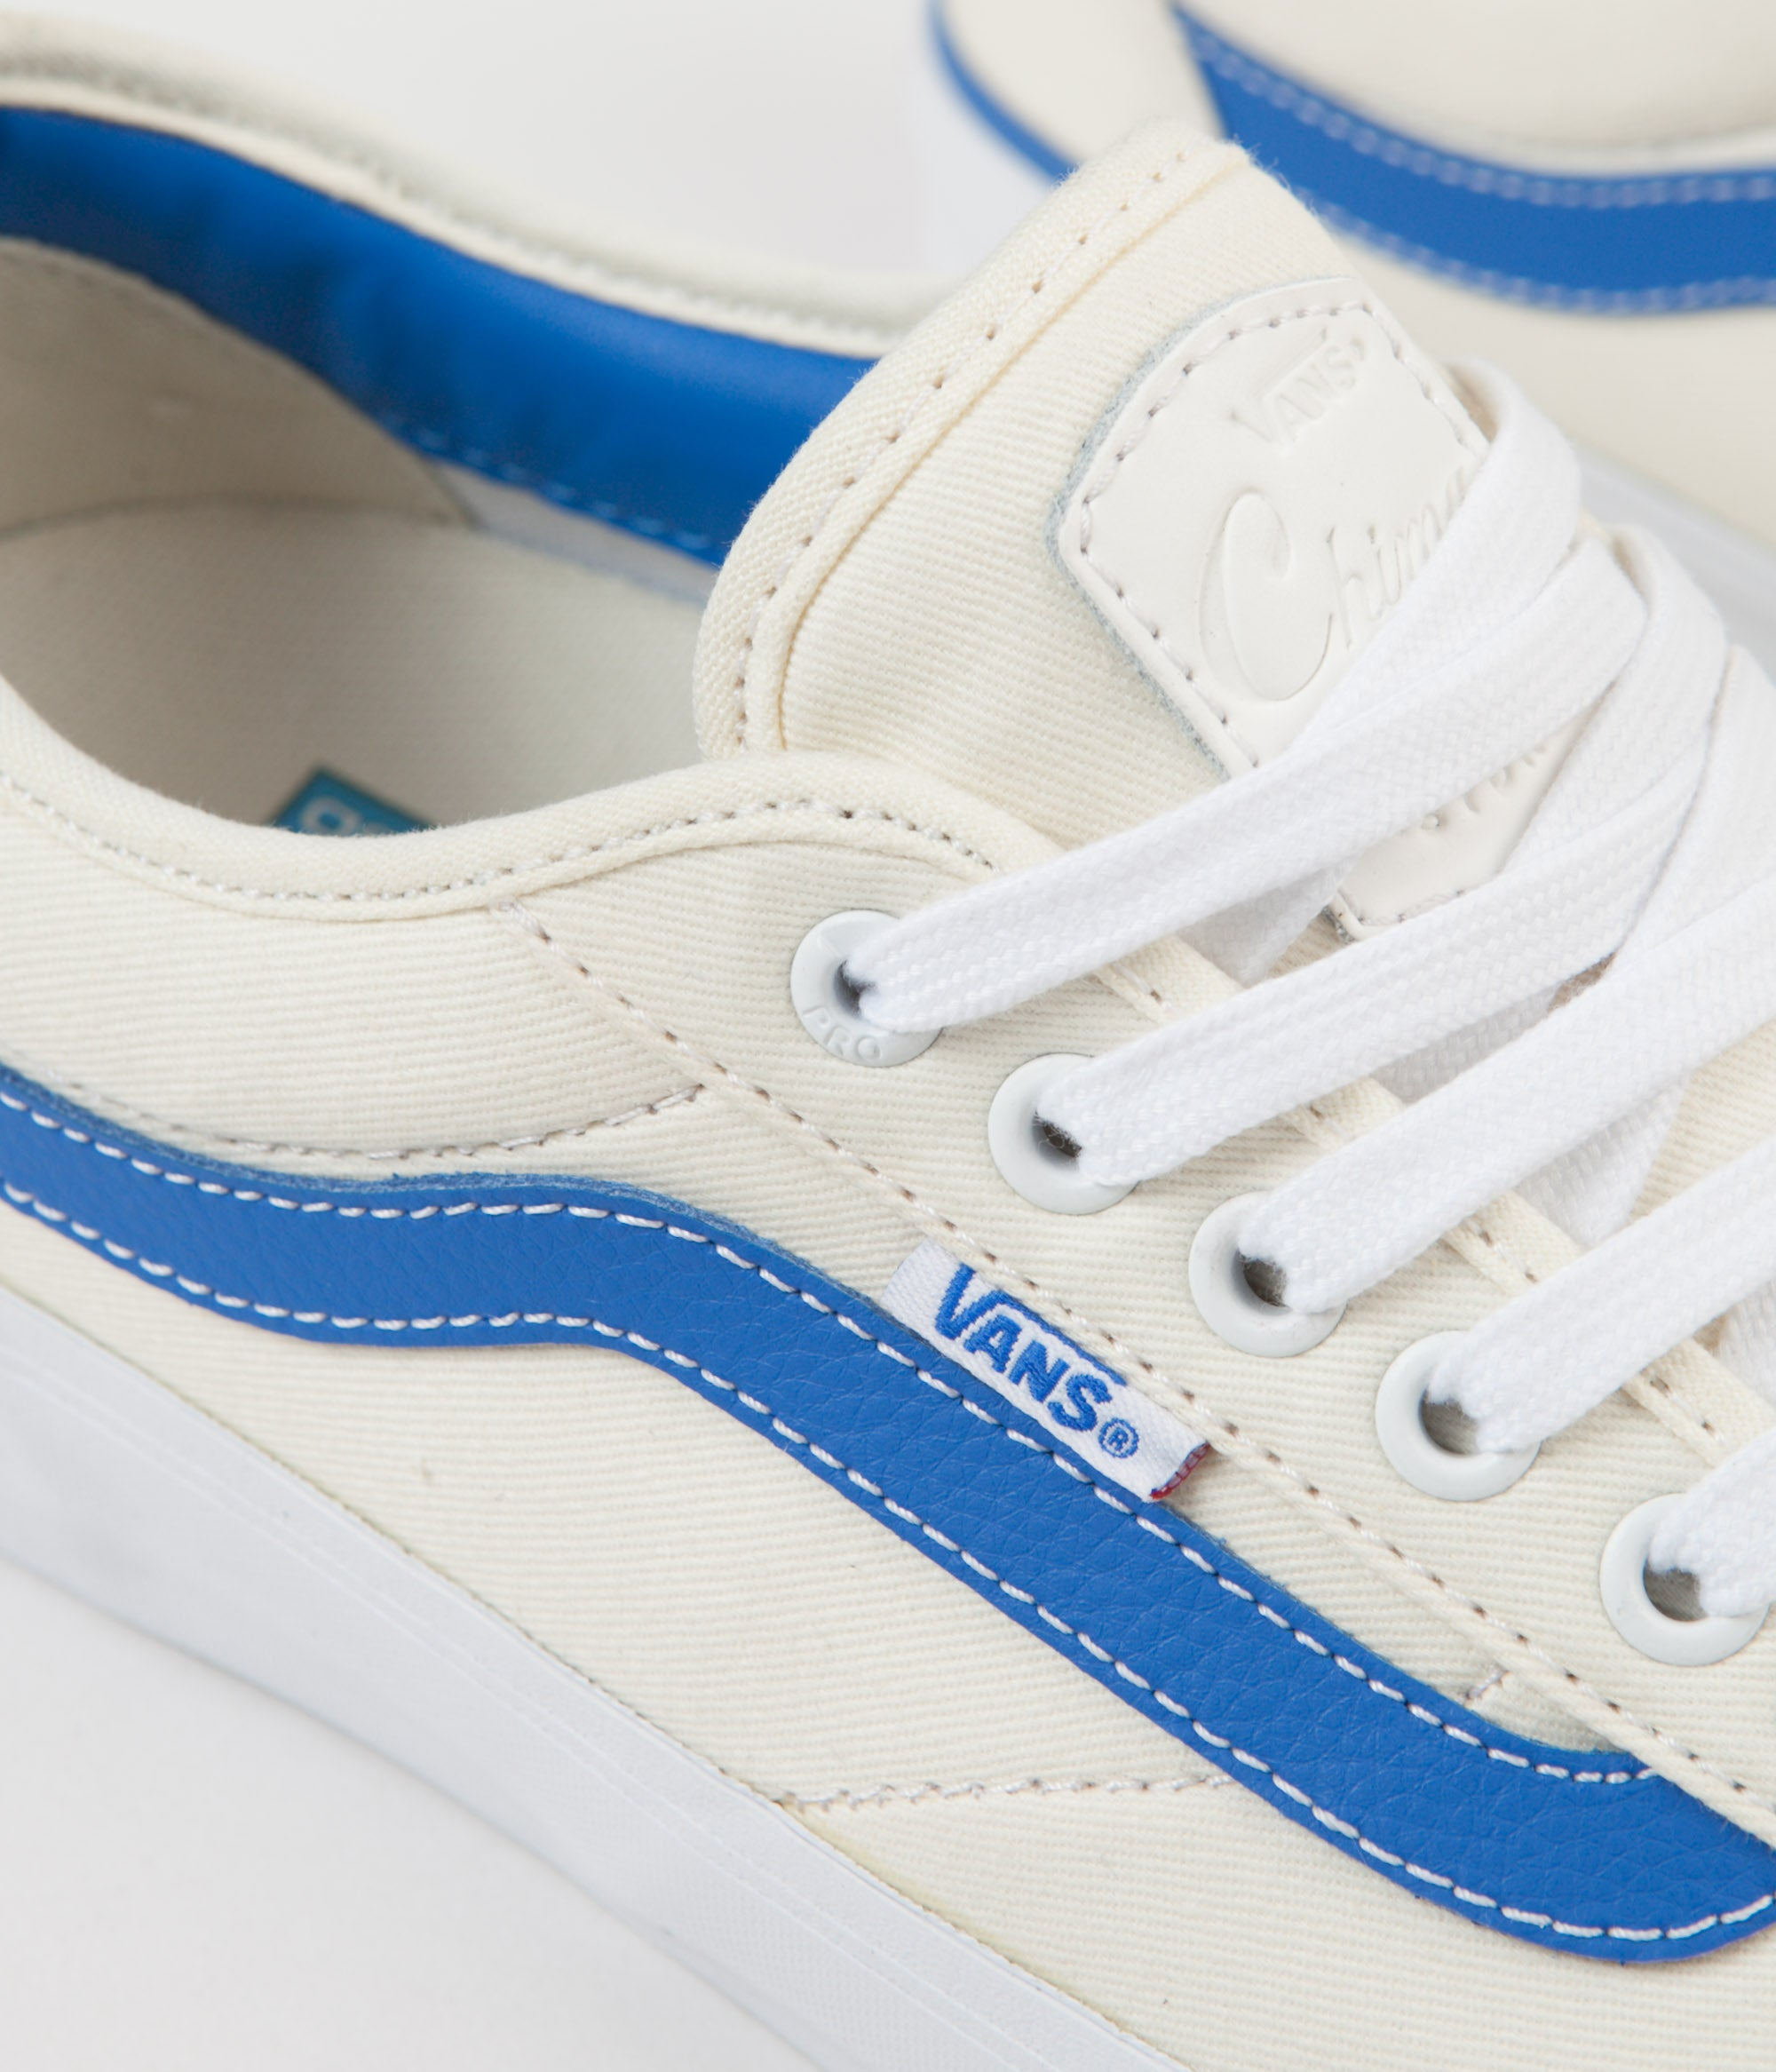 ... Vans Chima Pro Centre Court Shoes - Classic White   Victoria Blue ... 7895b6888